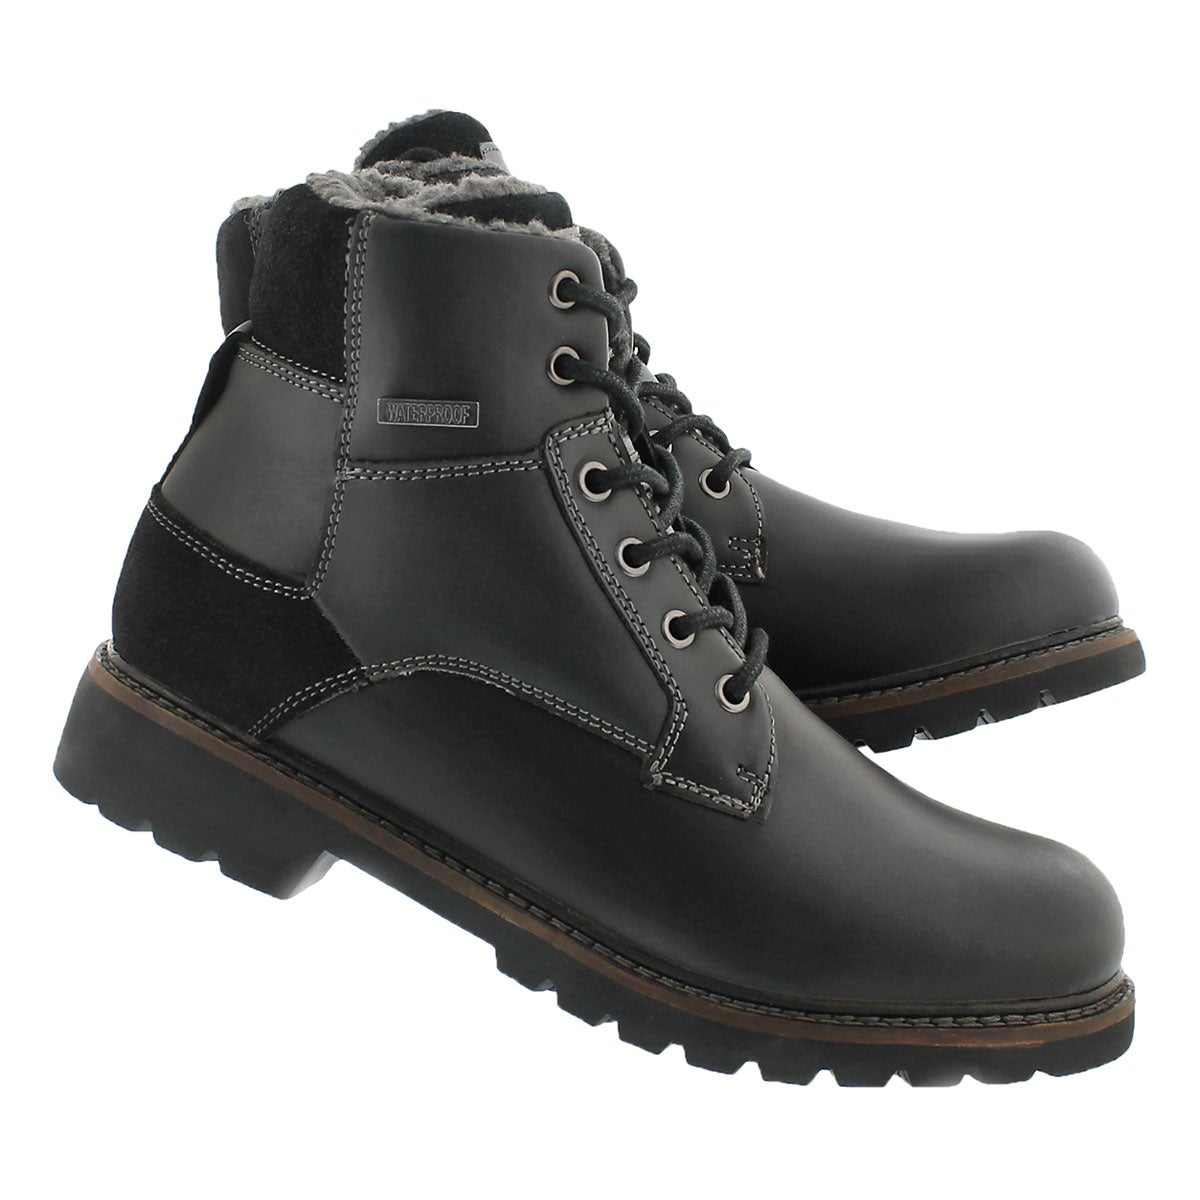 Mns Maxwell blk lace up winter boot